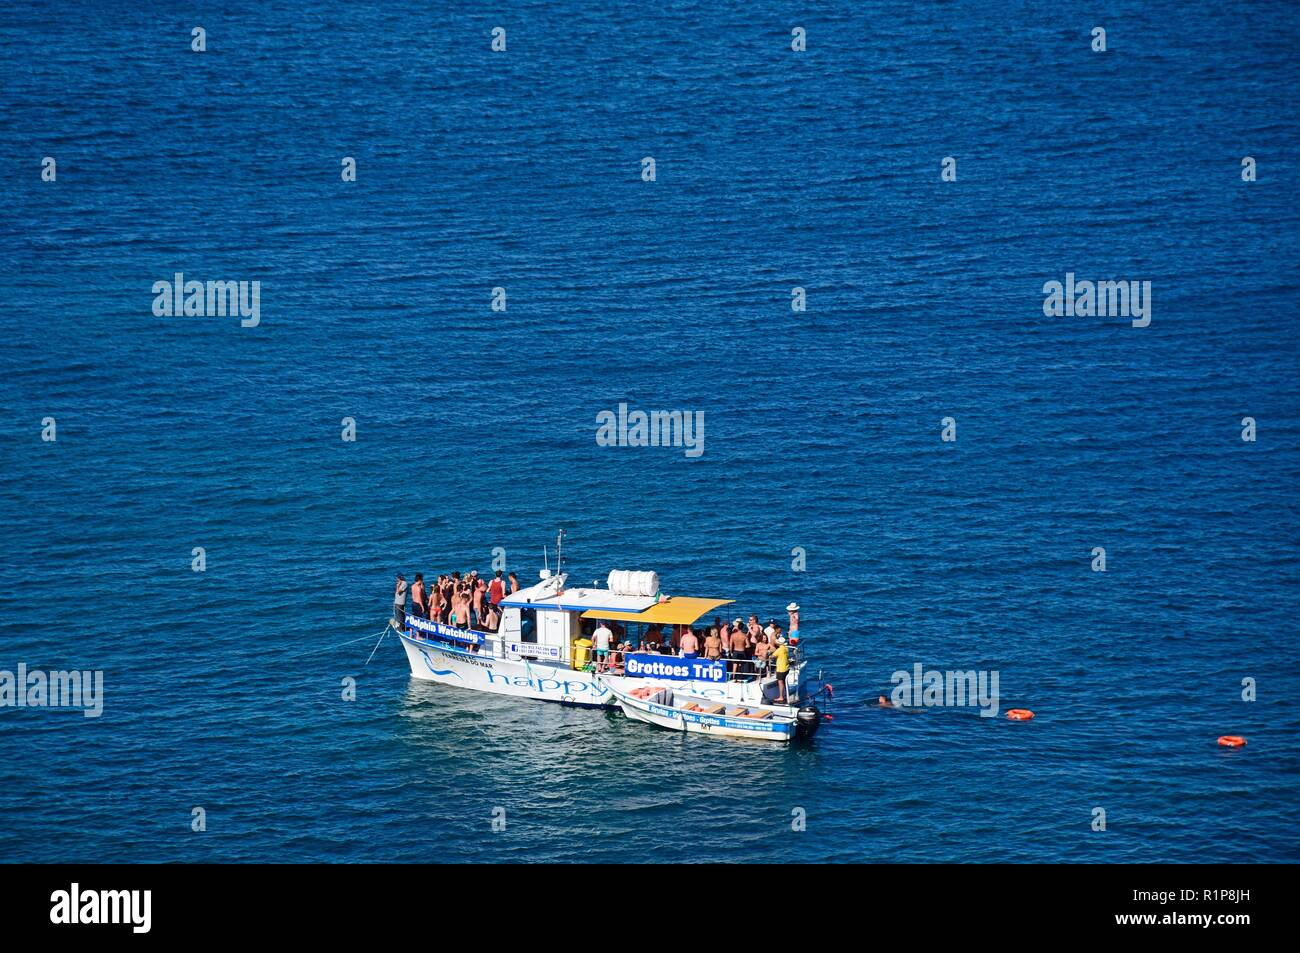 Elevated view tourists on a dolphin watching boat in the bay, Ponta da Piedade, Lagos, Algarve, Portugal, Europe. - Stock Image